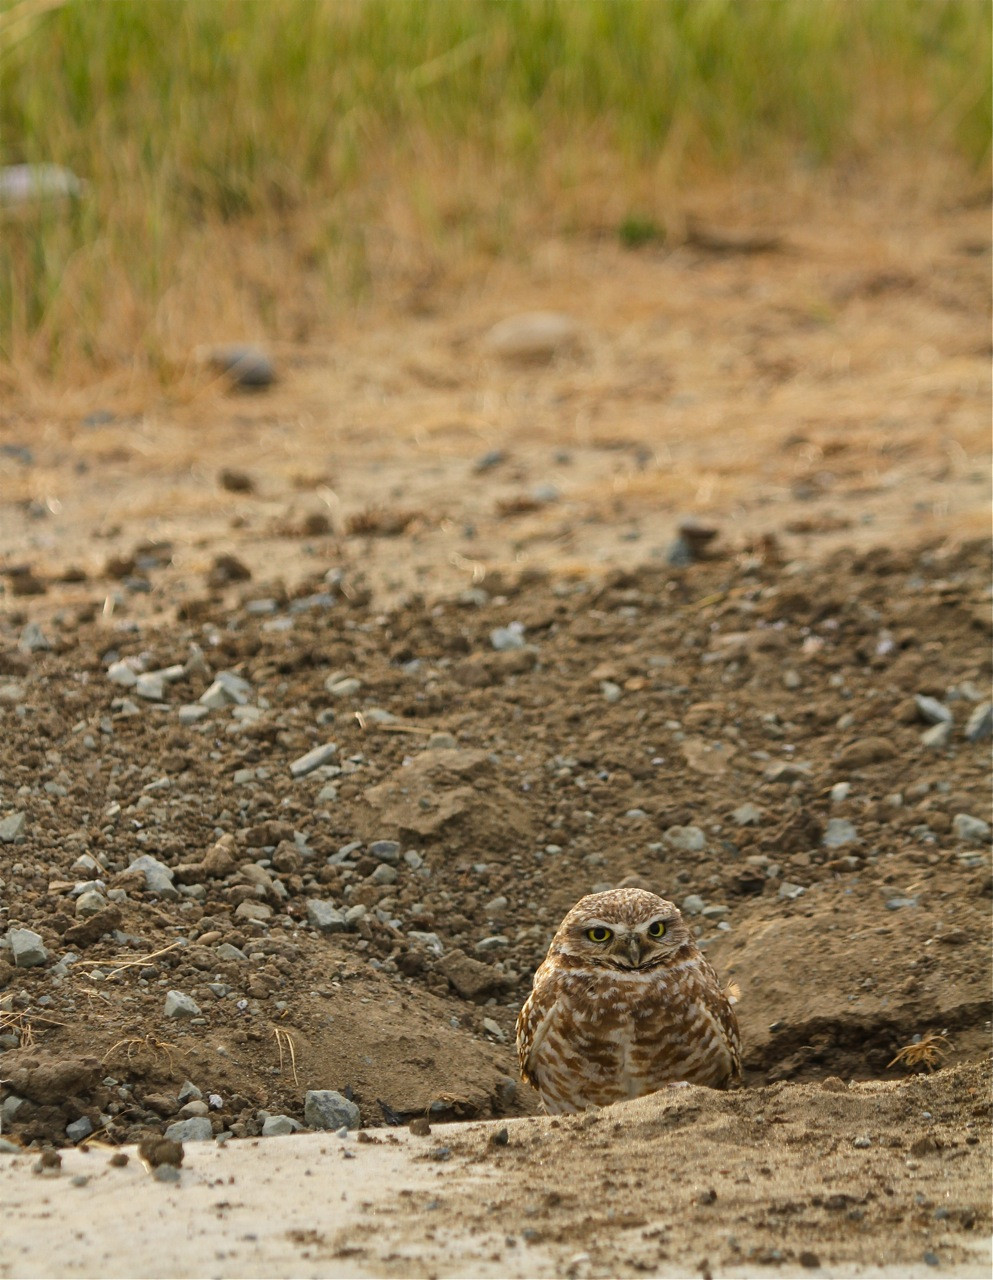 Burrowing owls brentwood_0305.jpg